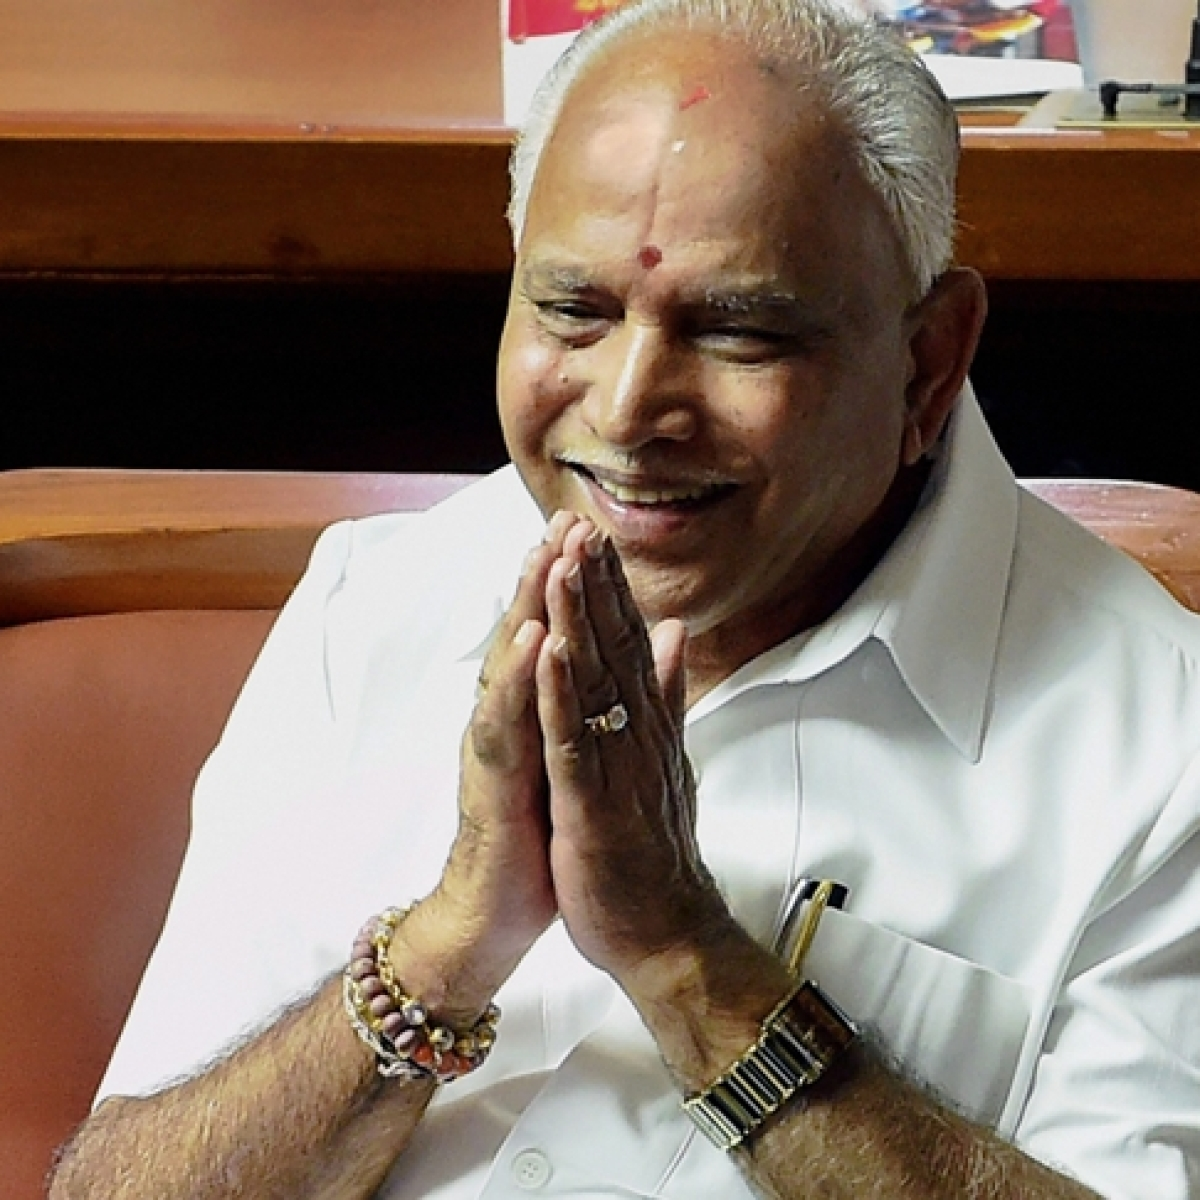 Coronavirus in Karnataka: CM BS Yediyurappa announces reopening of temples from June 1